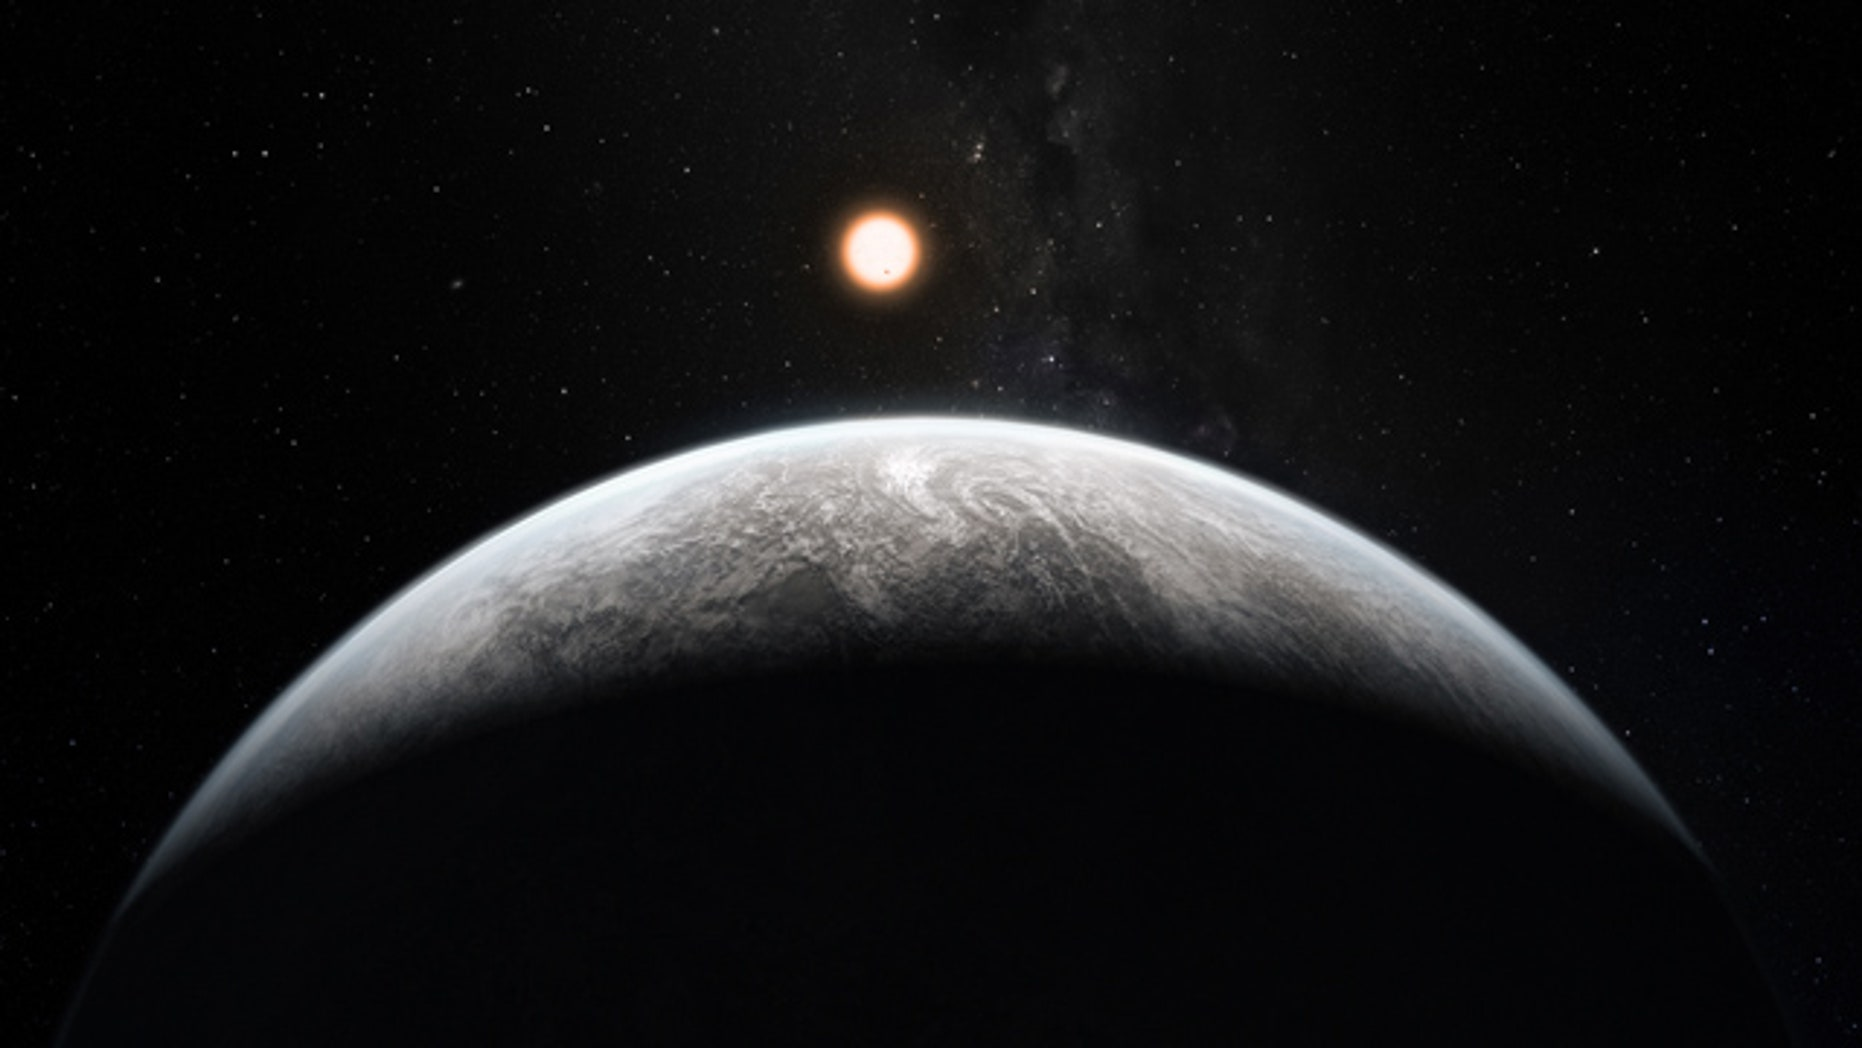 This artists impression shows the alien planet HD 85512b orbiting the Sun-like star HD 85512 in the southern constellation of Vela (The Sail). It orbits a star 35 light-years from Earth and weighs the equivalent of 3.6 Earth masses and may be in the habitable zone.